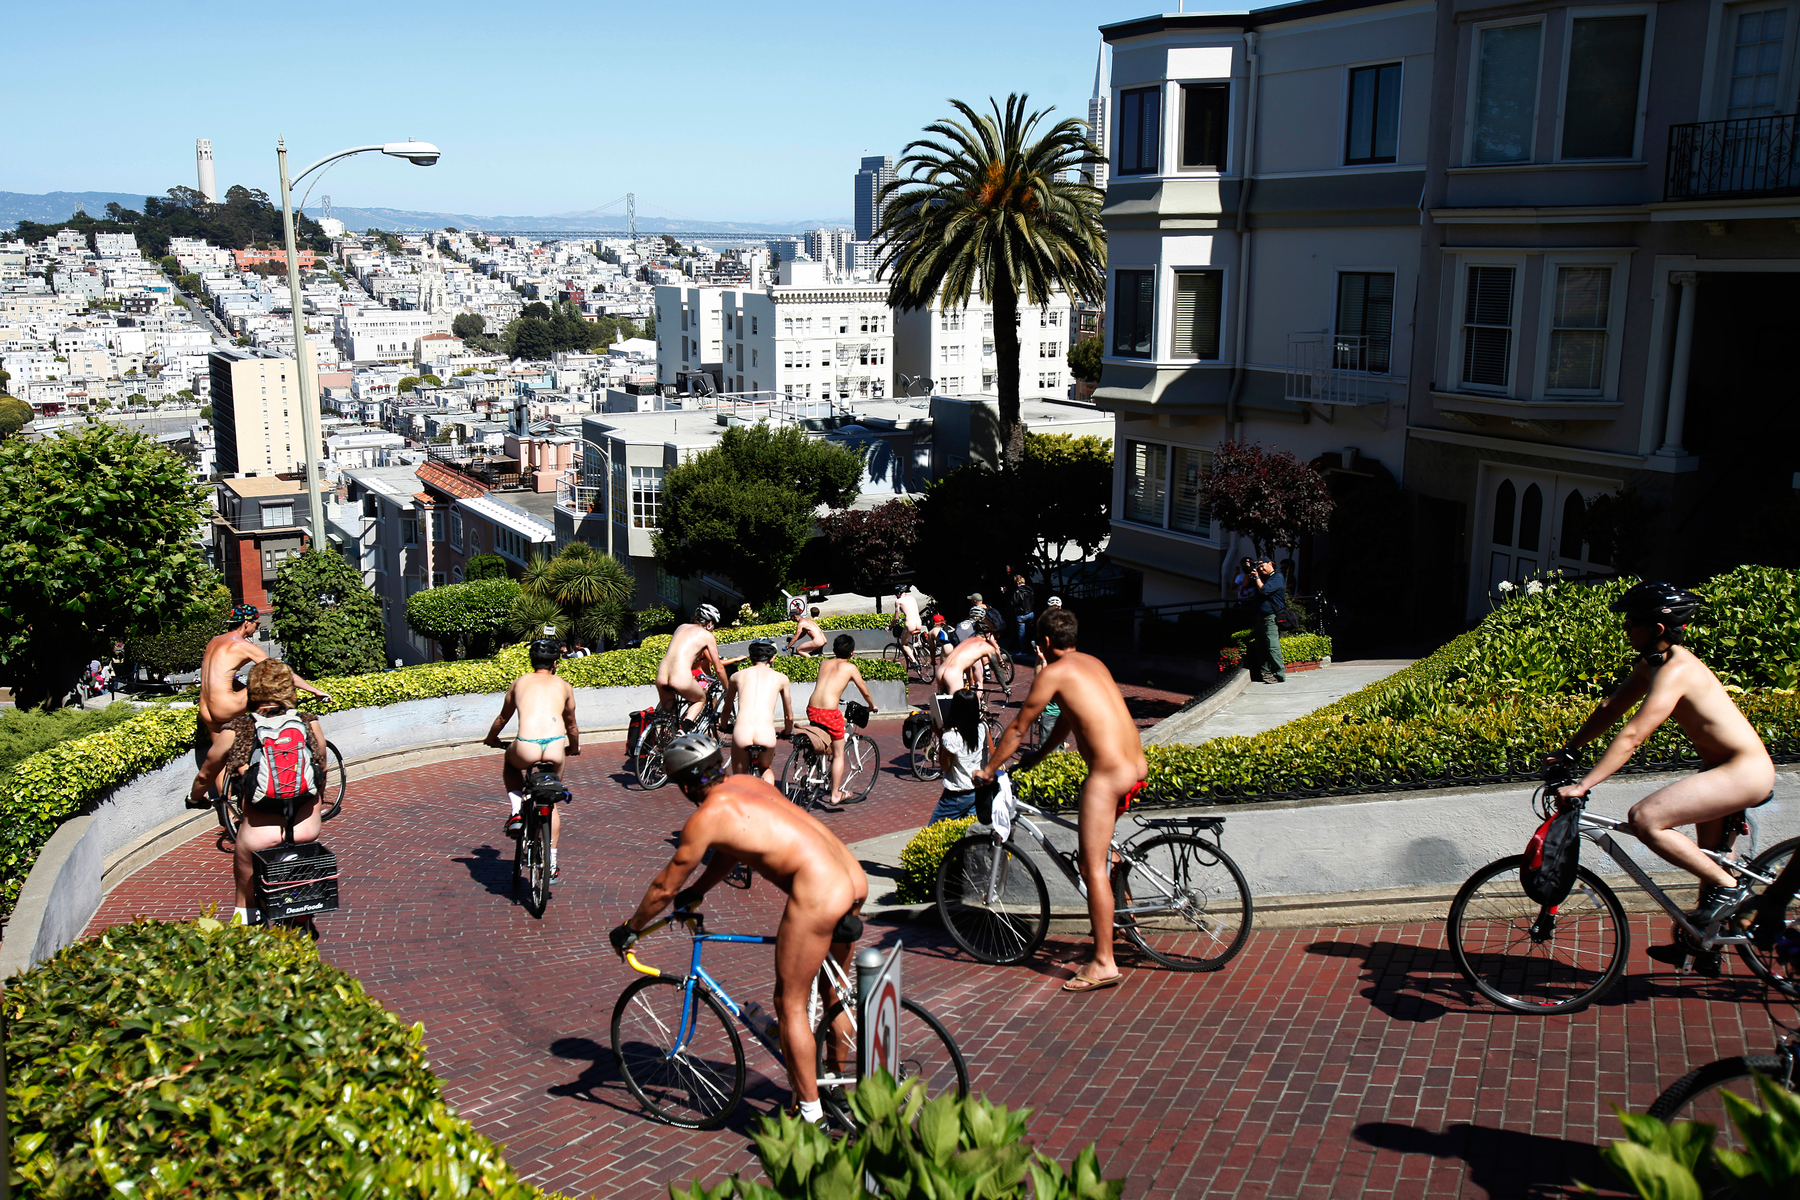 Naked cyclists negotiate the hairpin turns down Lombard Street during the World Naked Bike Ride in downtown San Francisco, California June 9, 2012. The ride aims to promote a body-positive culture and encourage cycling as a greener mode of transportation.